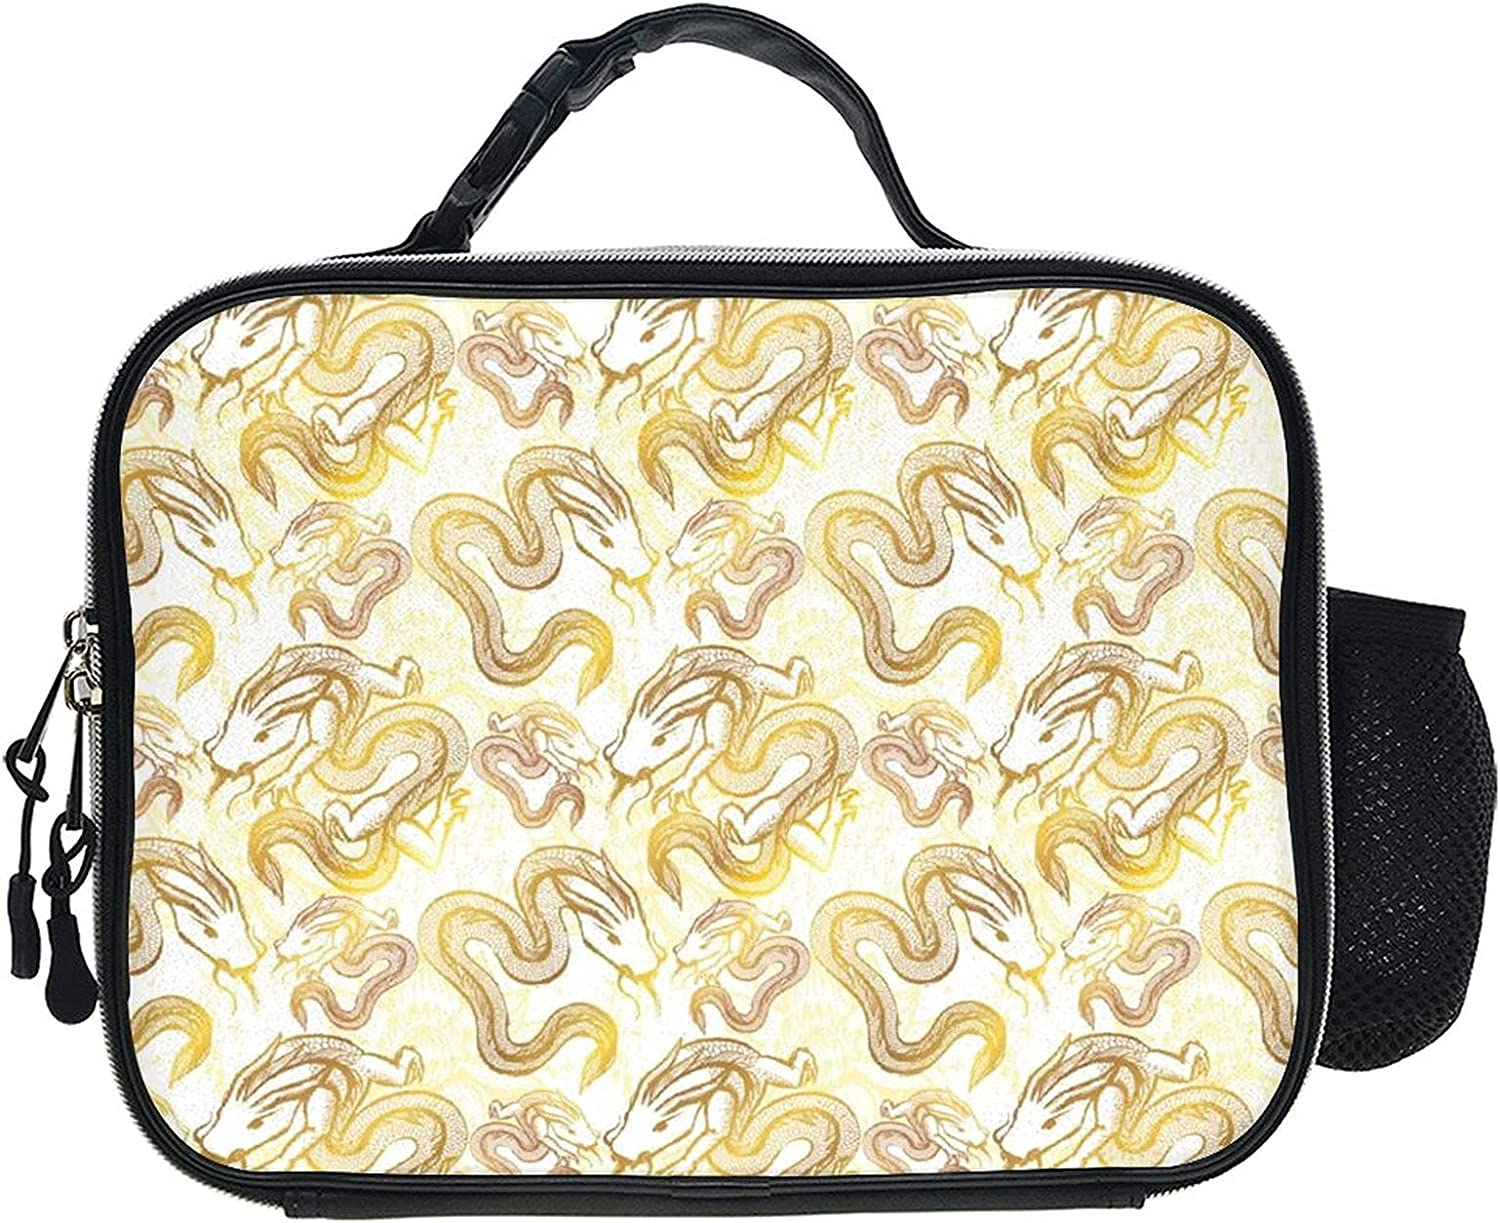 Lunch Box Lunchbag Can Hang Backpack Overseas parallel import regular item Direct store Small Tote Durable Bag Hand